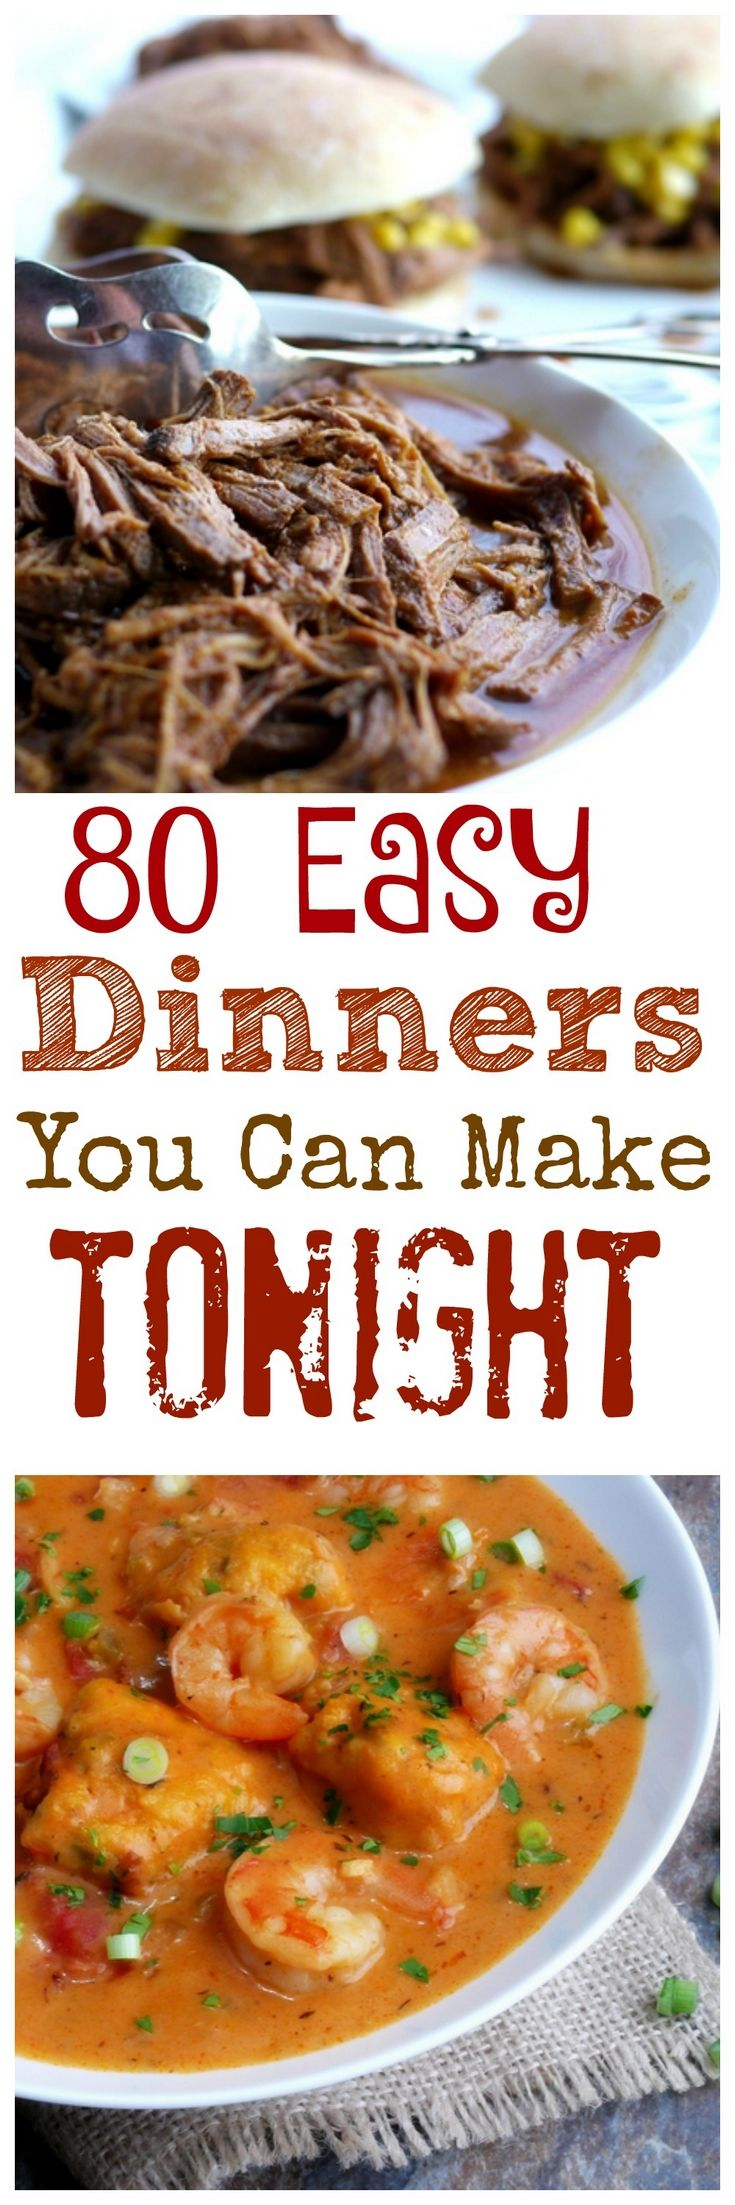 What's for dinner is the most asked question in my house! These 80 Easy Dinners You Can make tonight  is the perfect place for dinner inspiration from NoblePig.com.